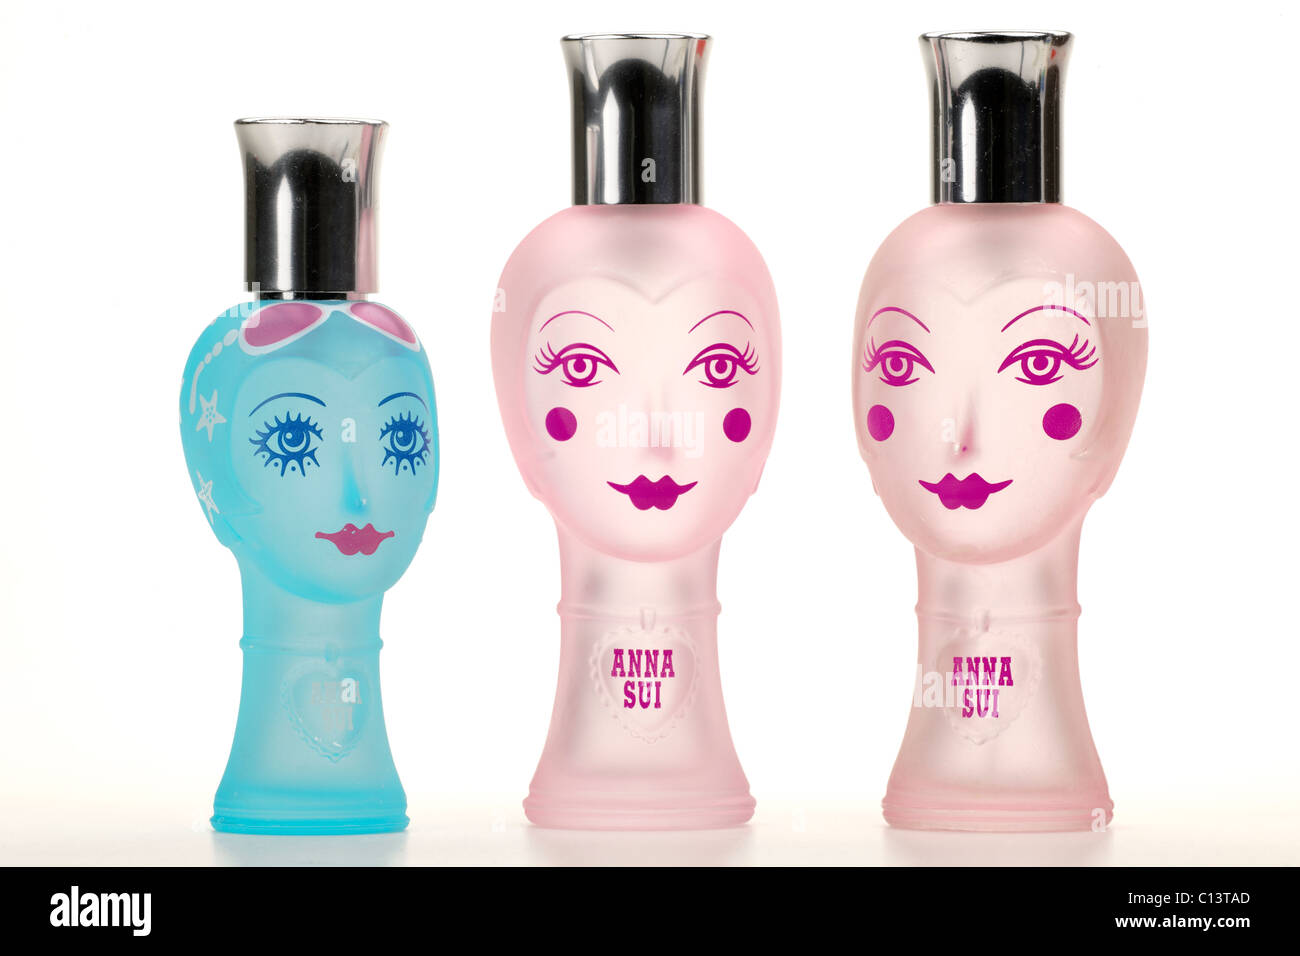 Three perfume bottles by Anna Sui - Stock Image